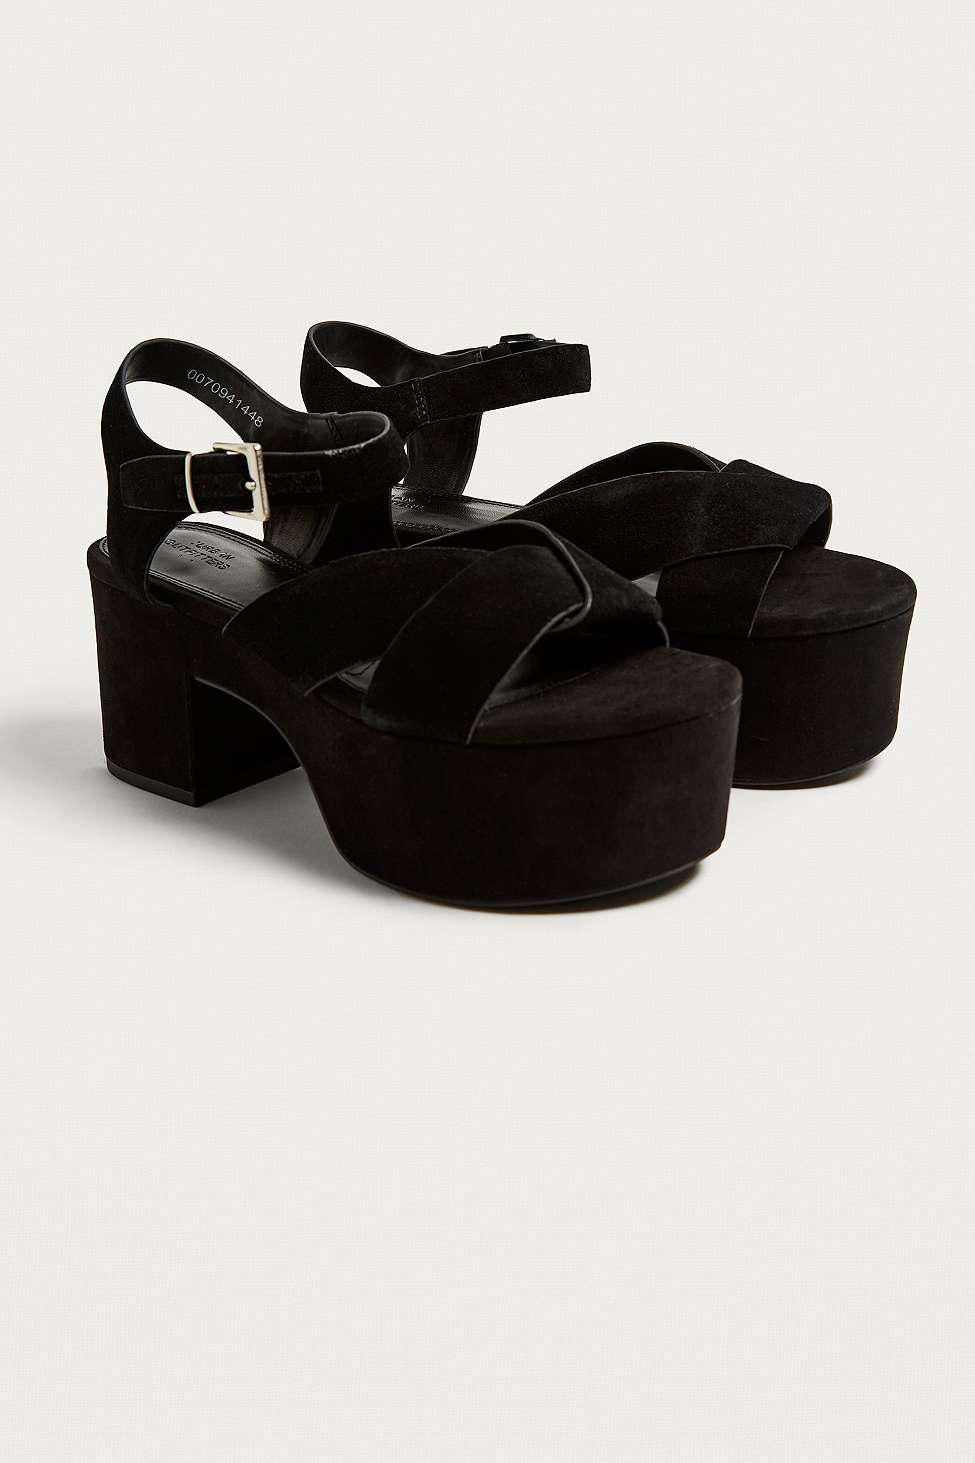 f8438854cf2 Urban Outfitters Uo Harriet Vamp Platform Sandals - Womens Uk 8 in ...